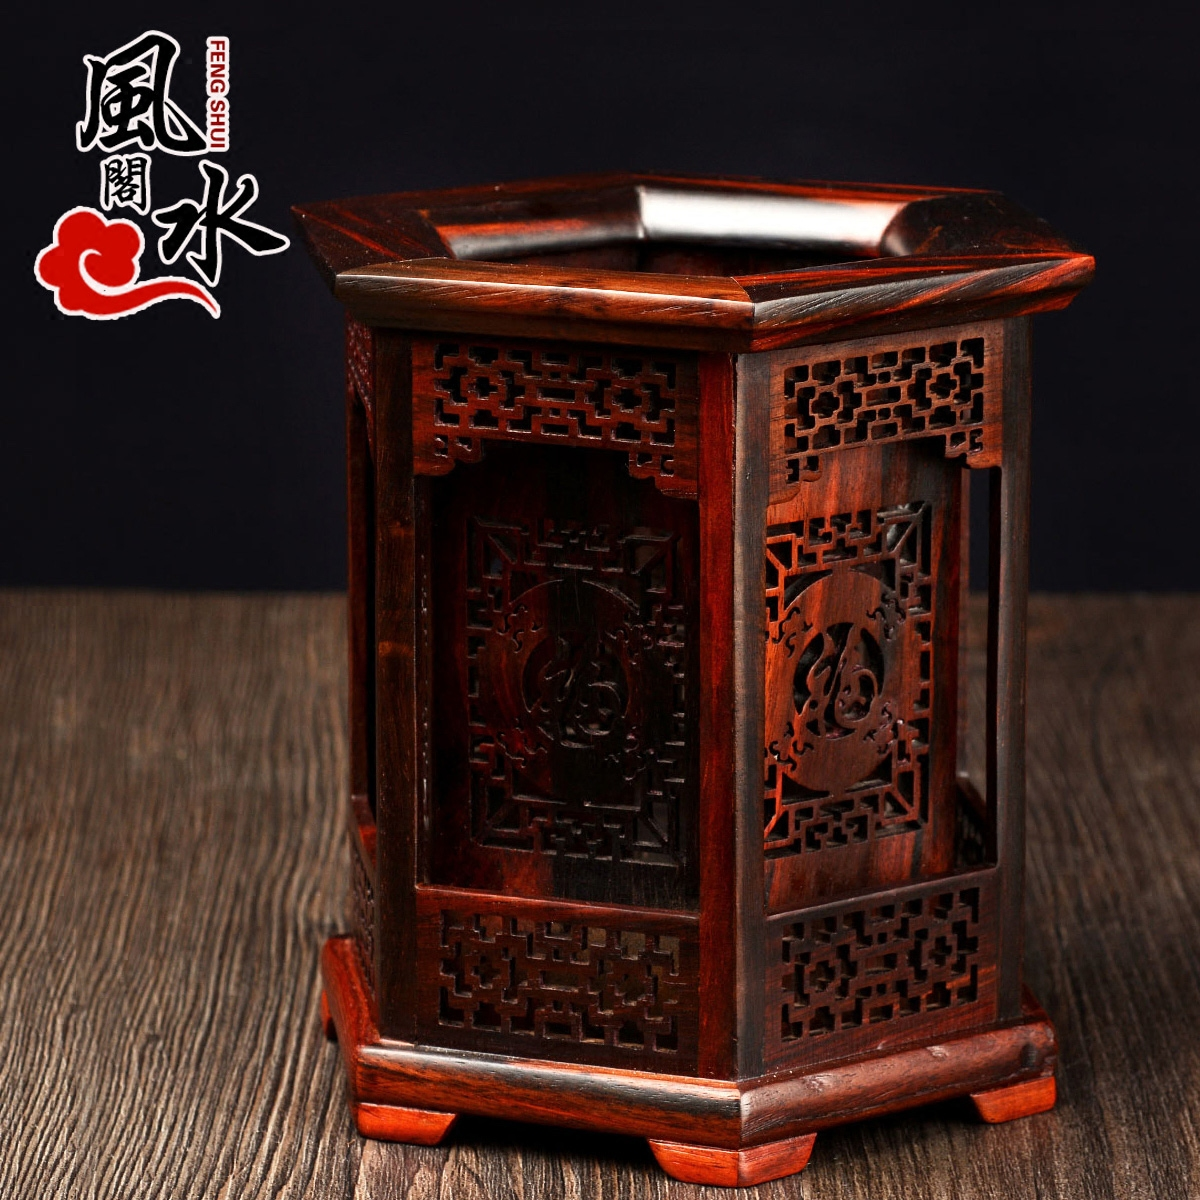 Feng shui house red rosewood pen hexagonal hollow mahogany wood carving crafts ornaments wenfangsibao